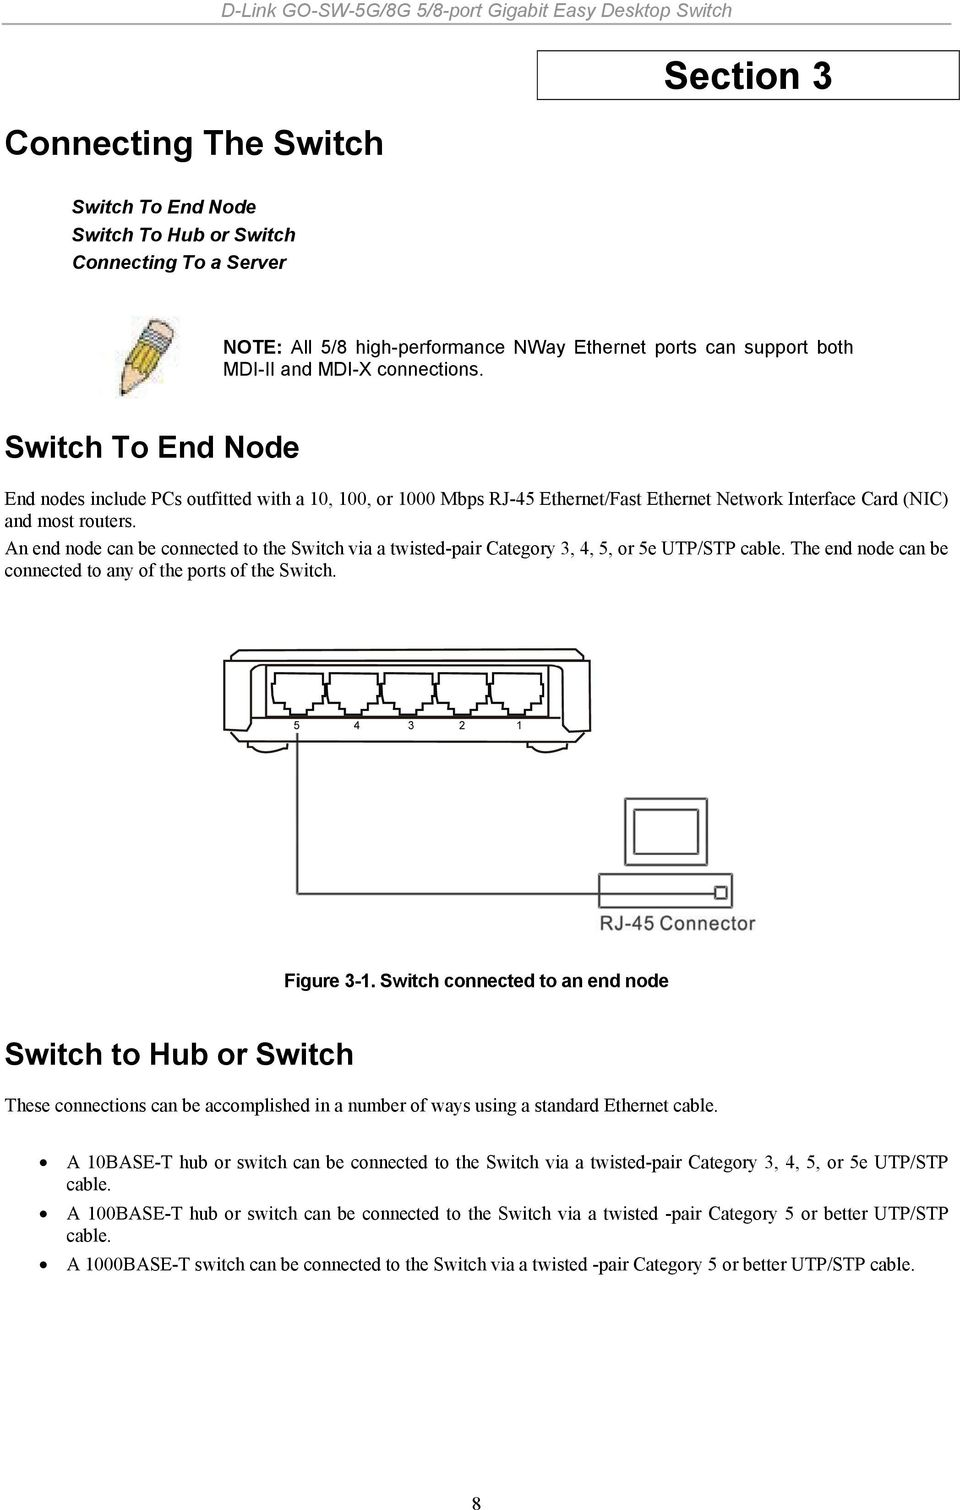 Switch To End Node End nodes include PCs outfitted with a 10, 100, or 1000 Mbps RJ-45 Ethernet/Fast Ethernet Network Interface Card (NIC) and most routers.